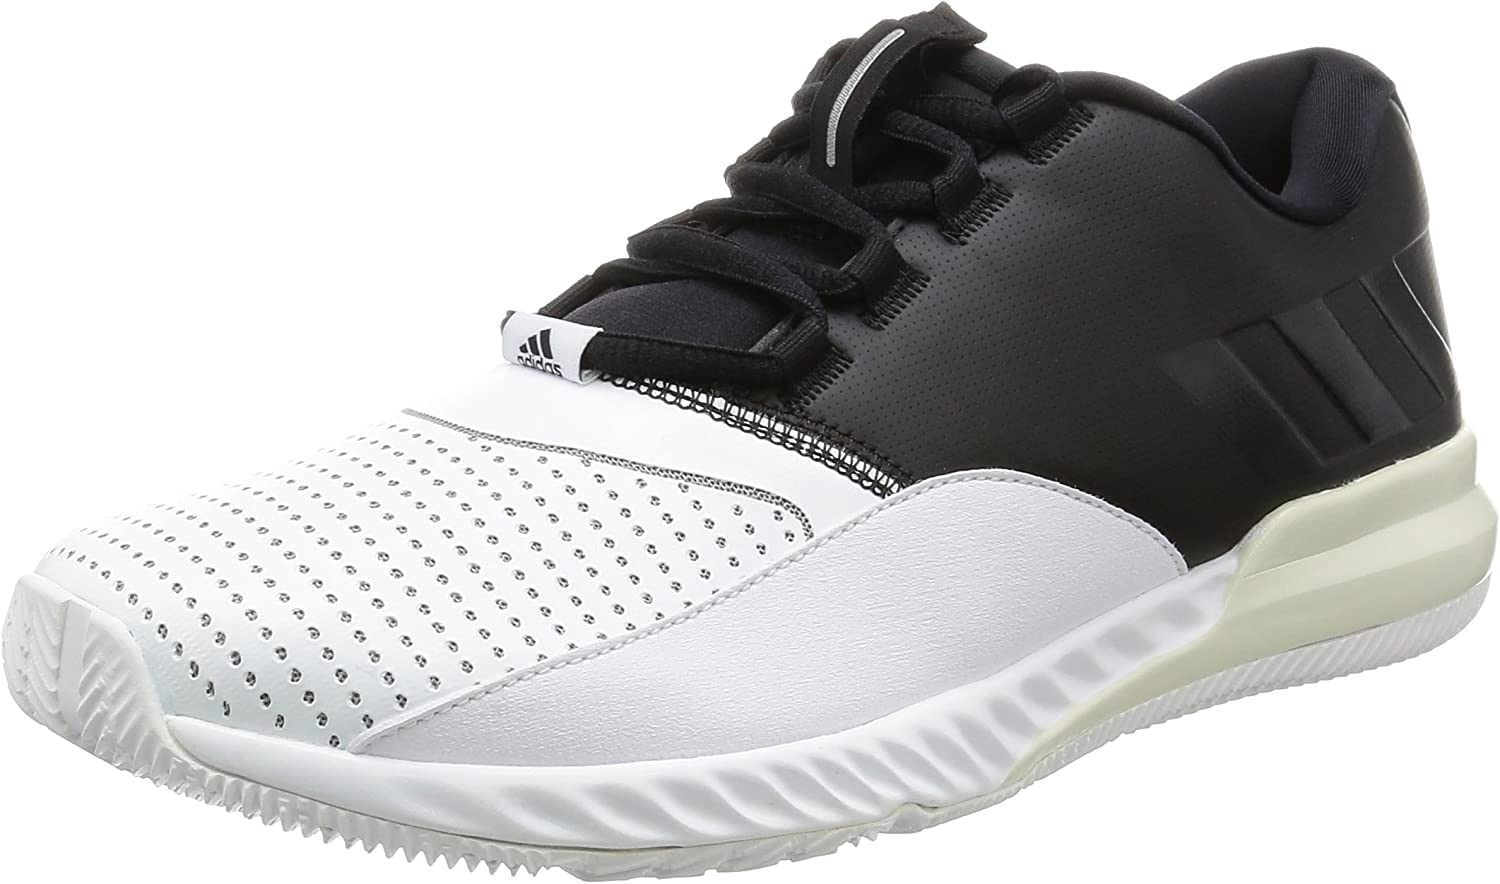 Adidas Men's's One Trainer Bounce Fitness shoes